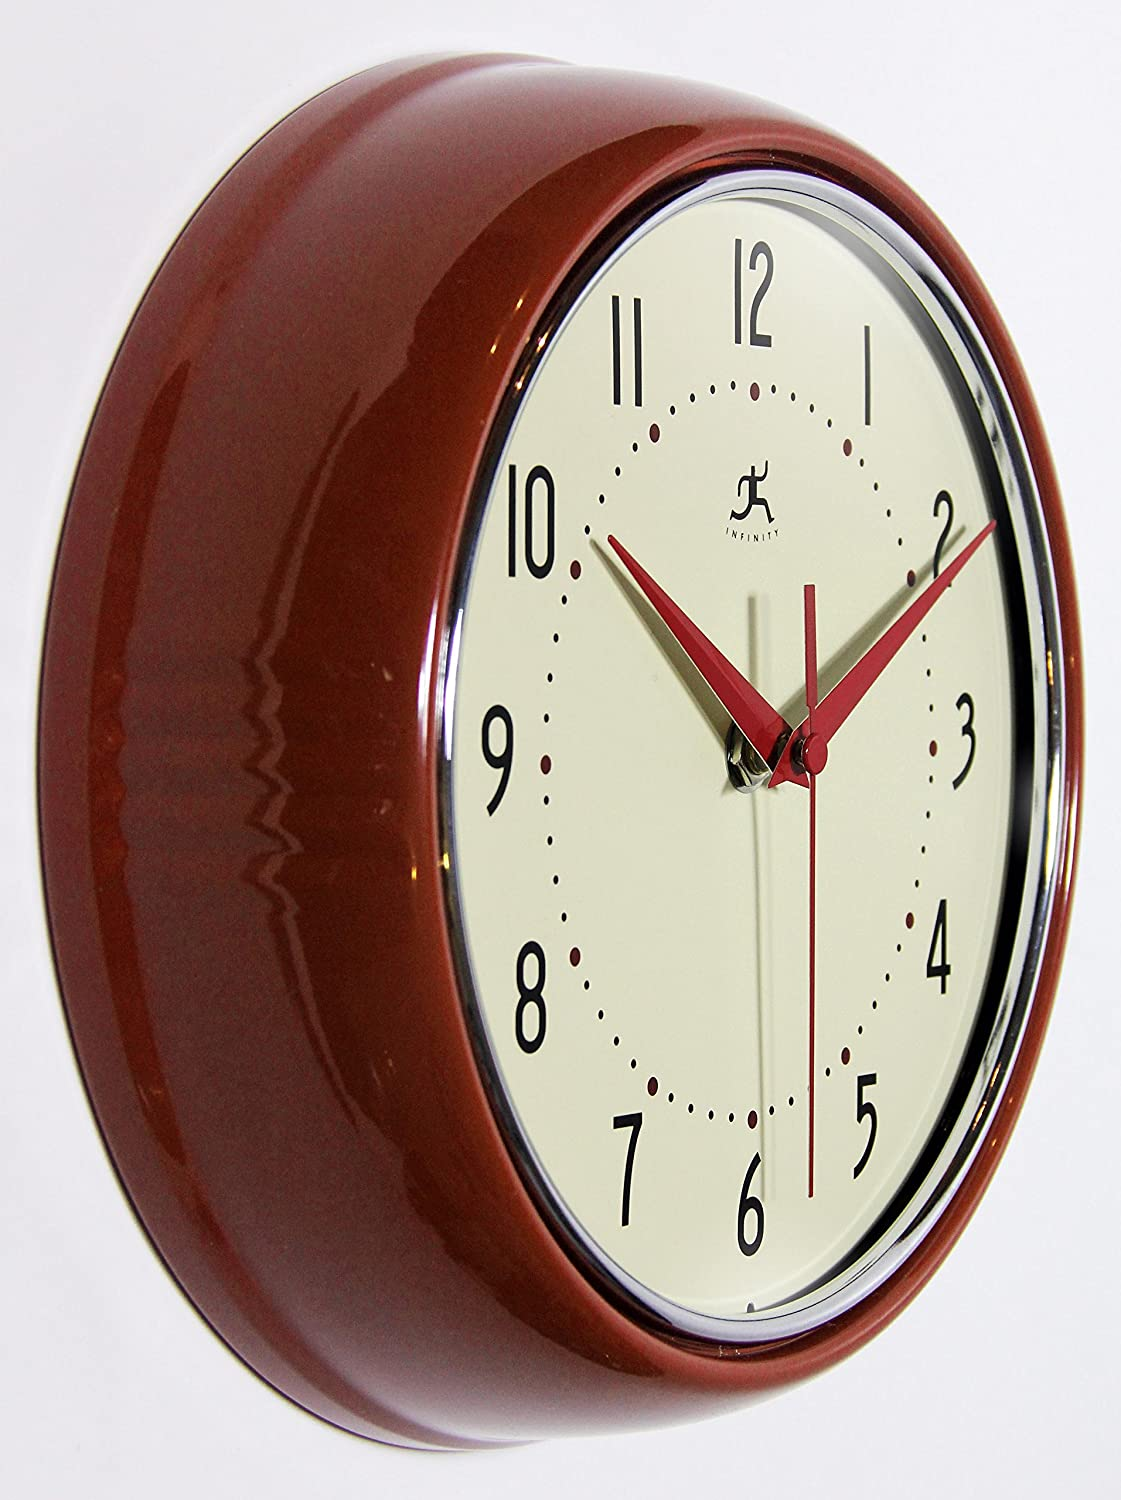 Infinity Instruments Round Silent Red Retro Indoor Wall Clock Home Kitchen Amazon Com